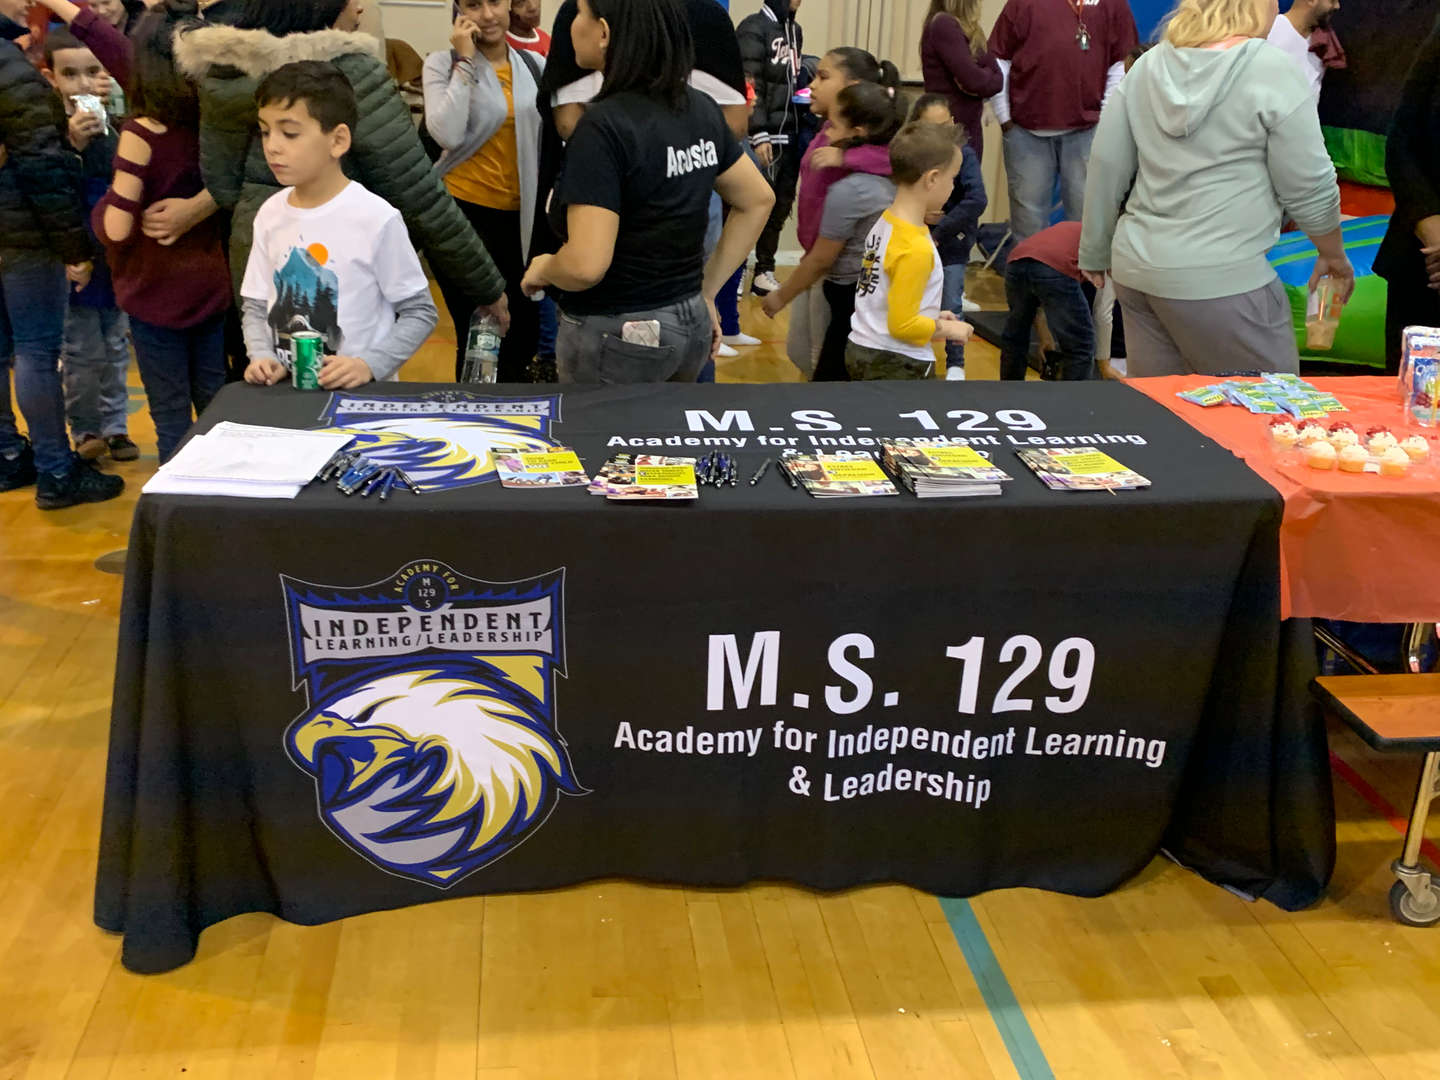 People gathered around the M.S. 129 Academy for Independent Learning & Leadership table